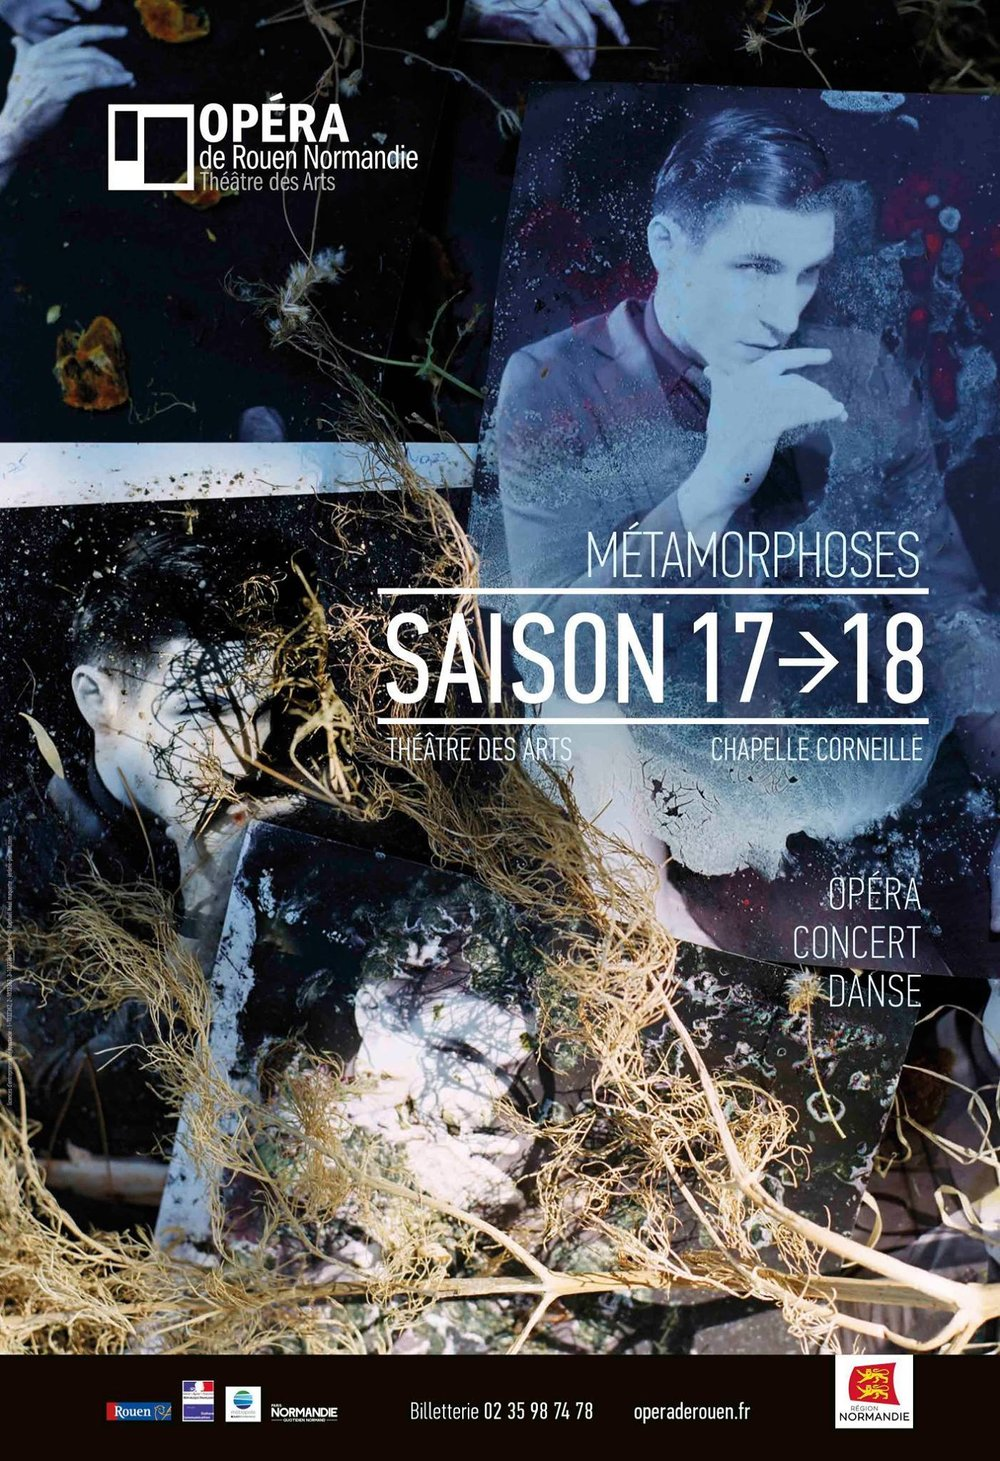 Opéra de Rouen  Official poster for Season 2017-18